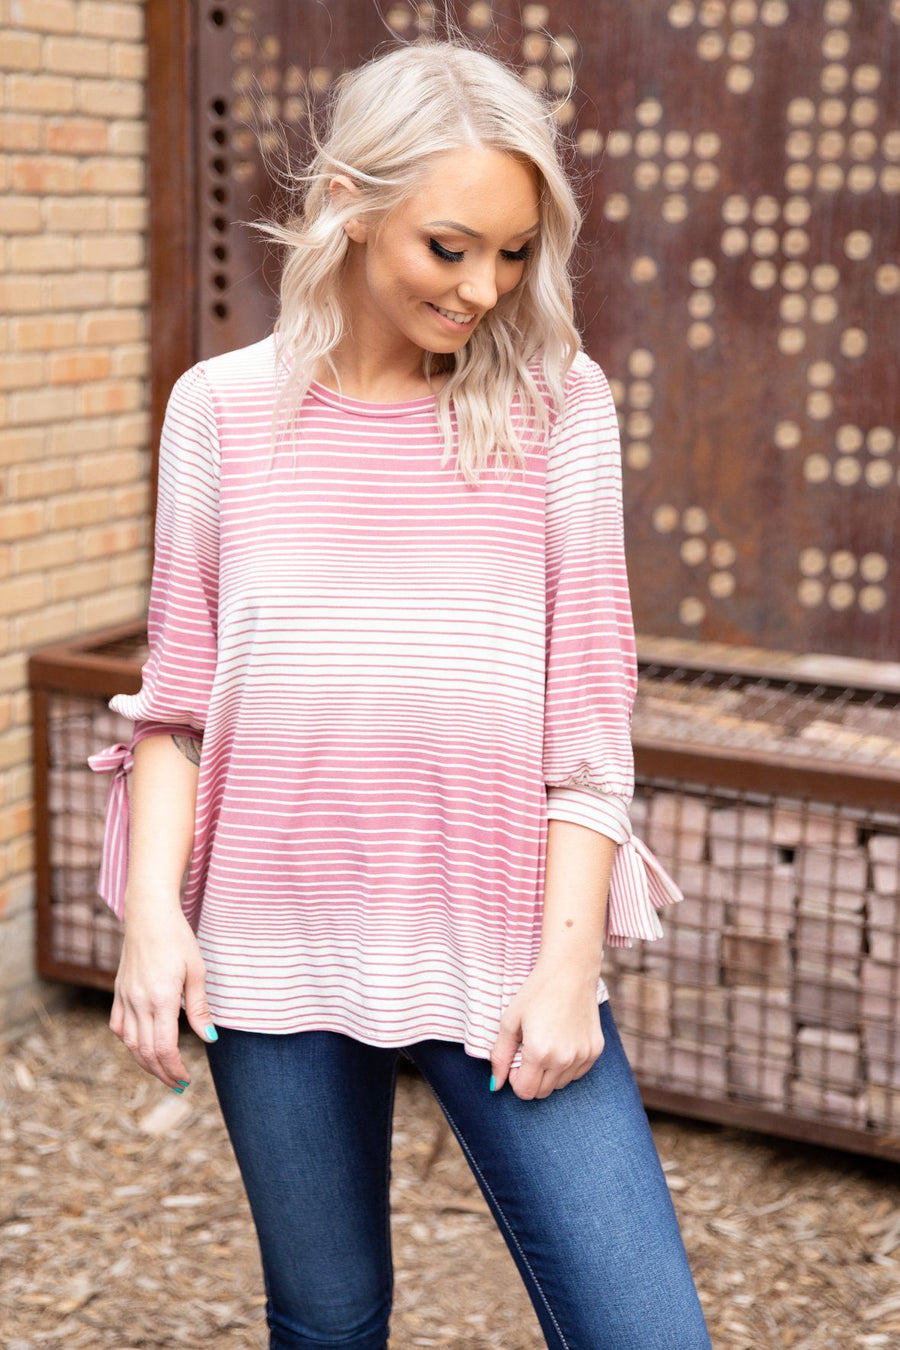 ffb0a0cee1 Cute Long Sleeve Tops | Shop 3/4 Sleeve Blouses | Filly Flair